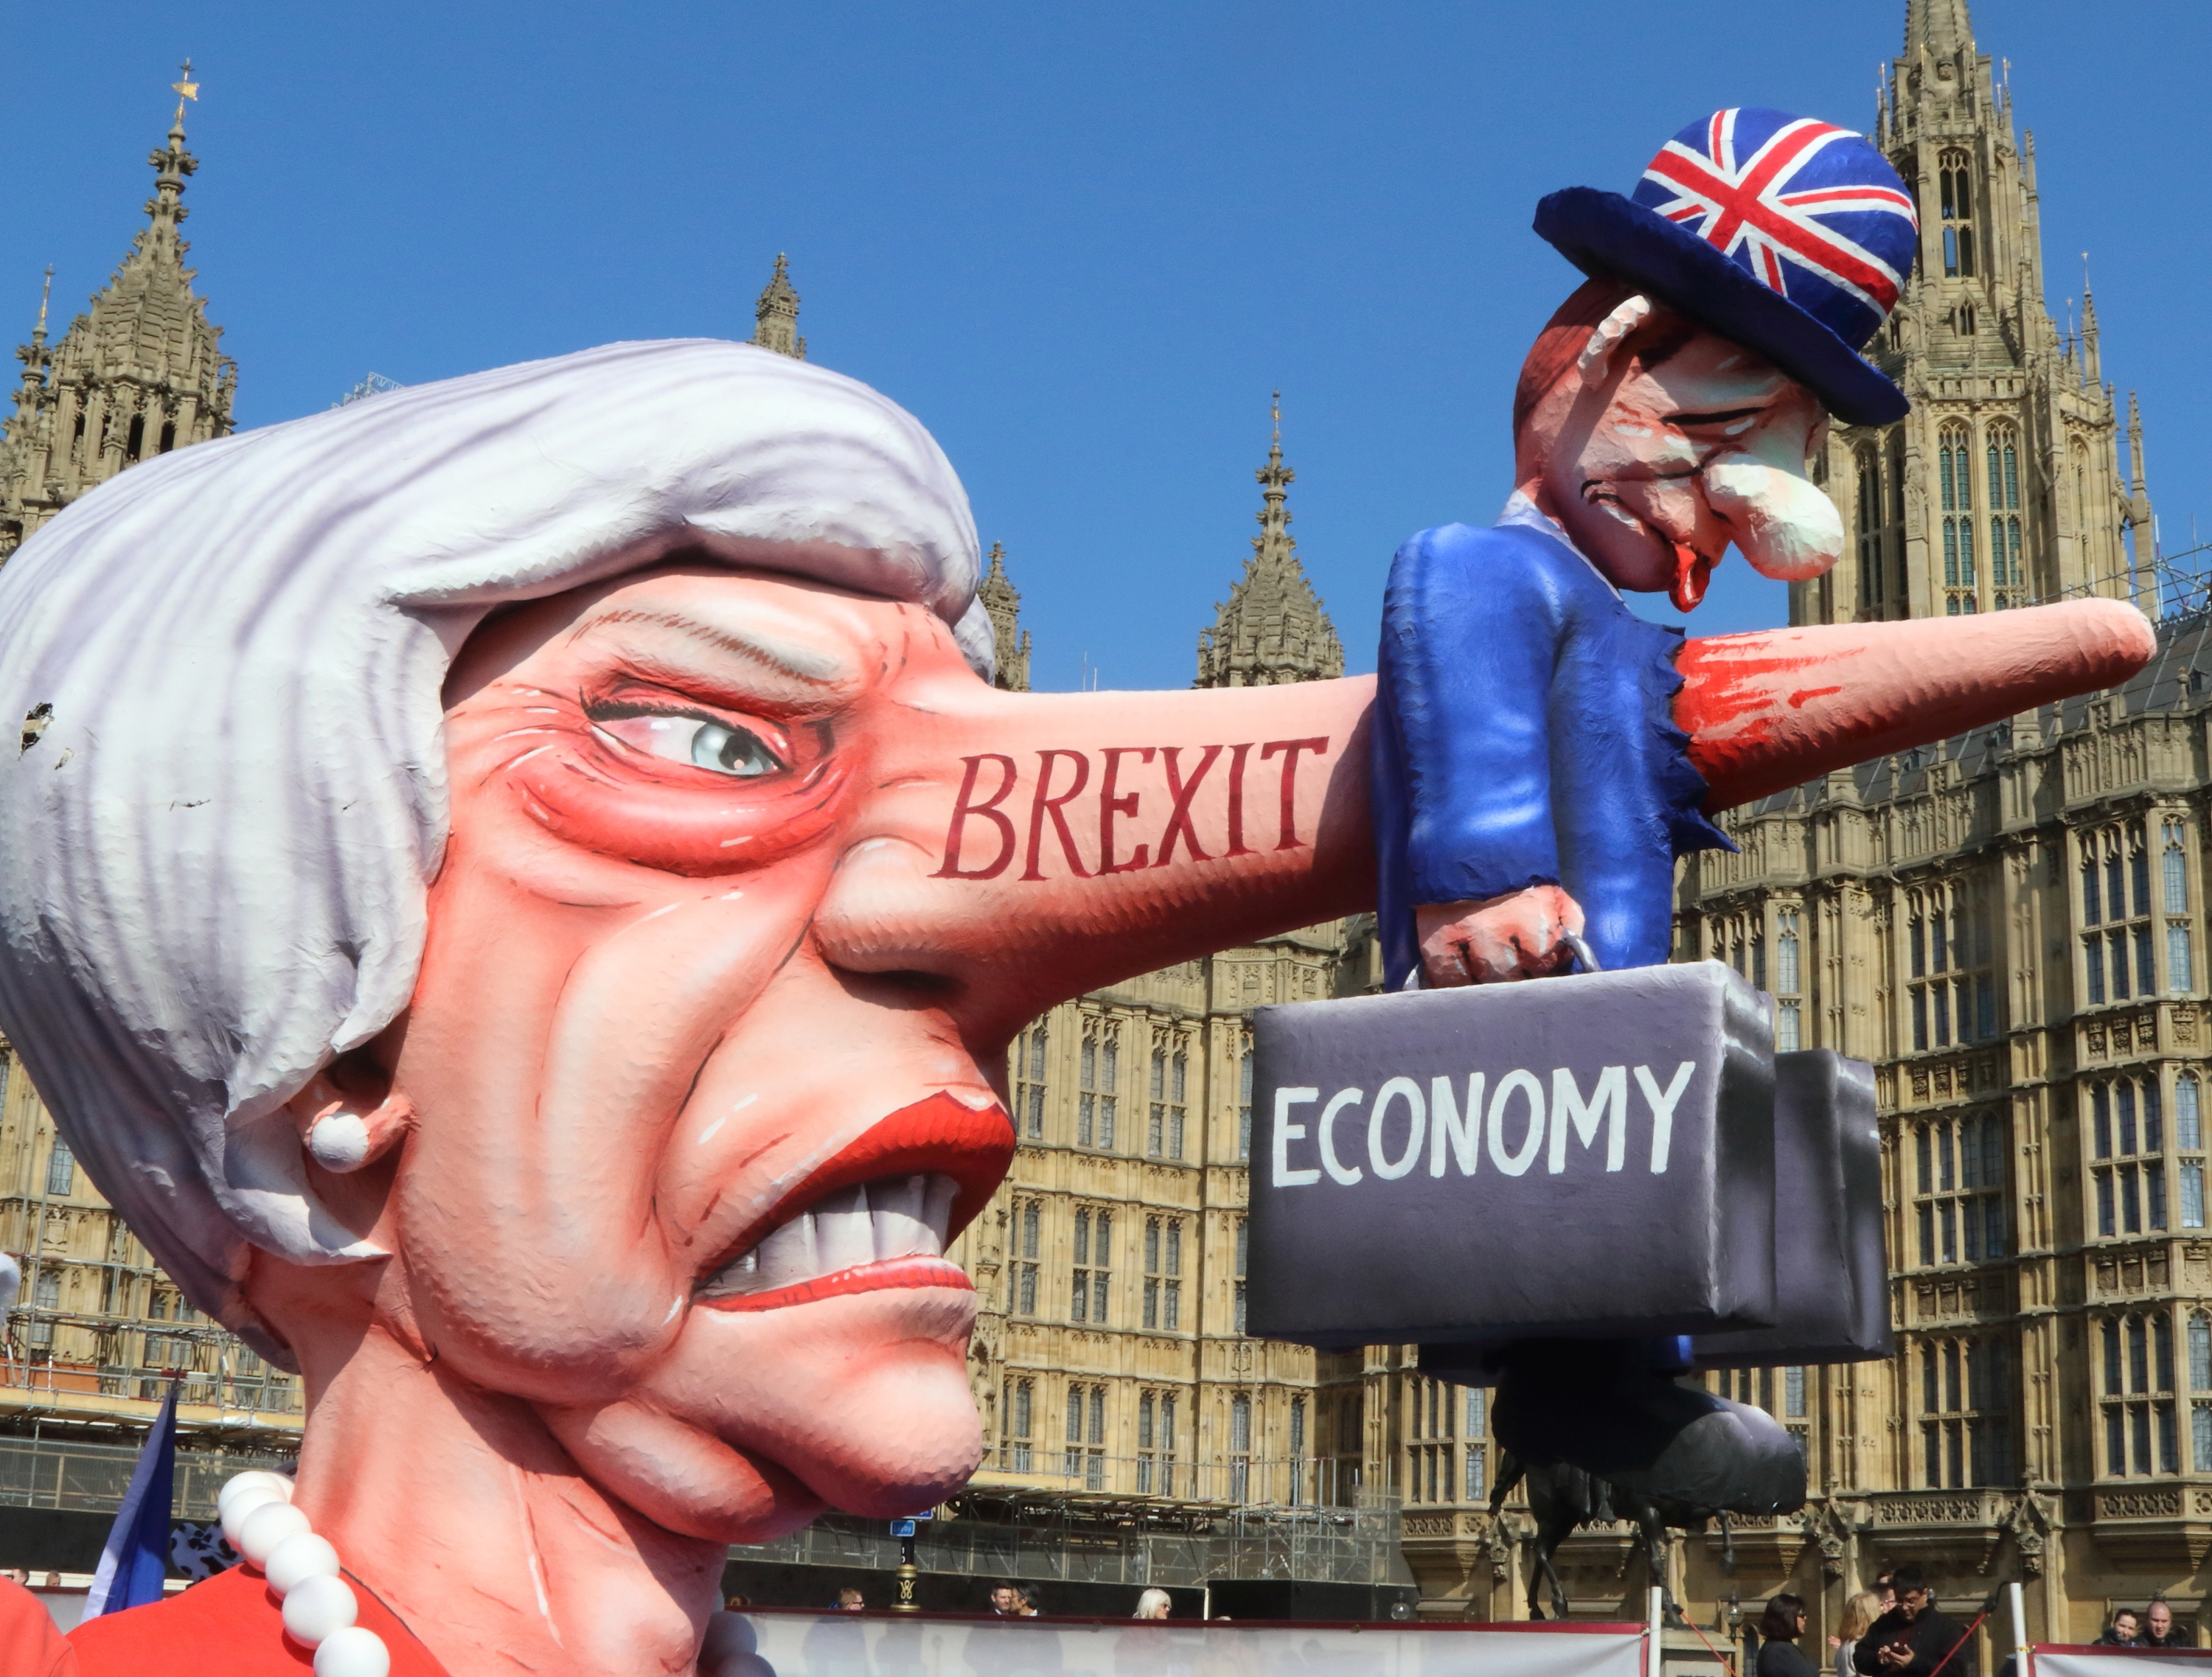 A giant effigy of Prime Minister Theresa May, with the